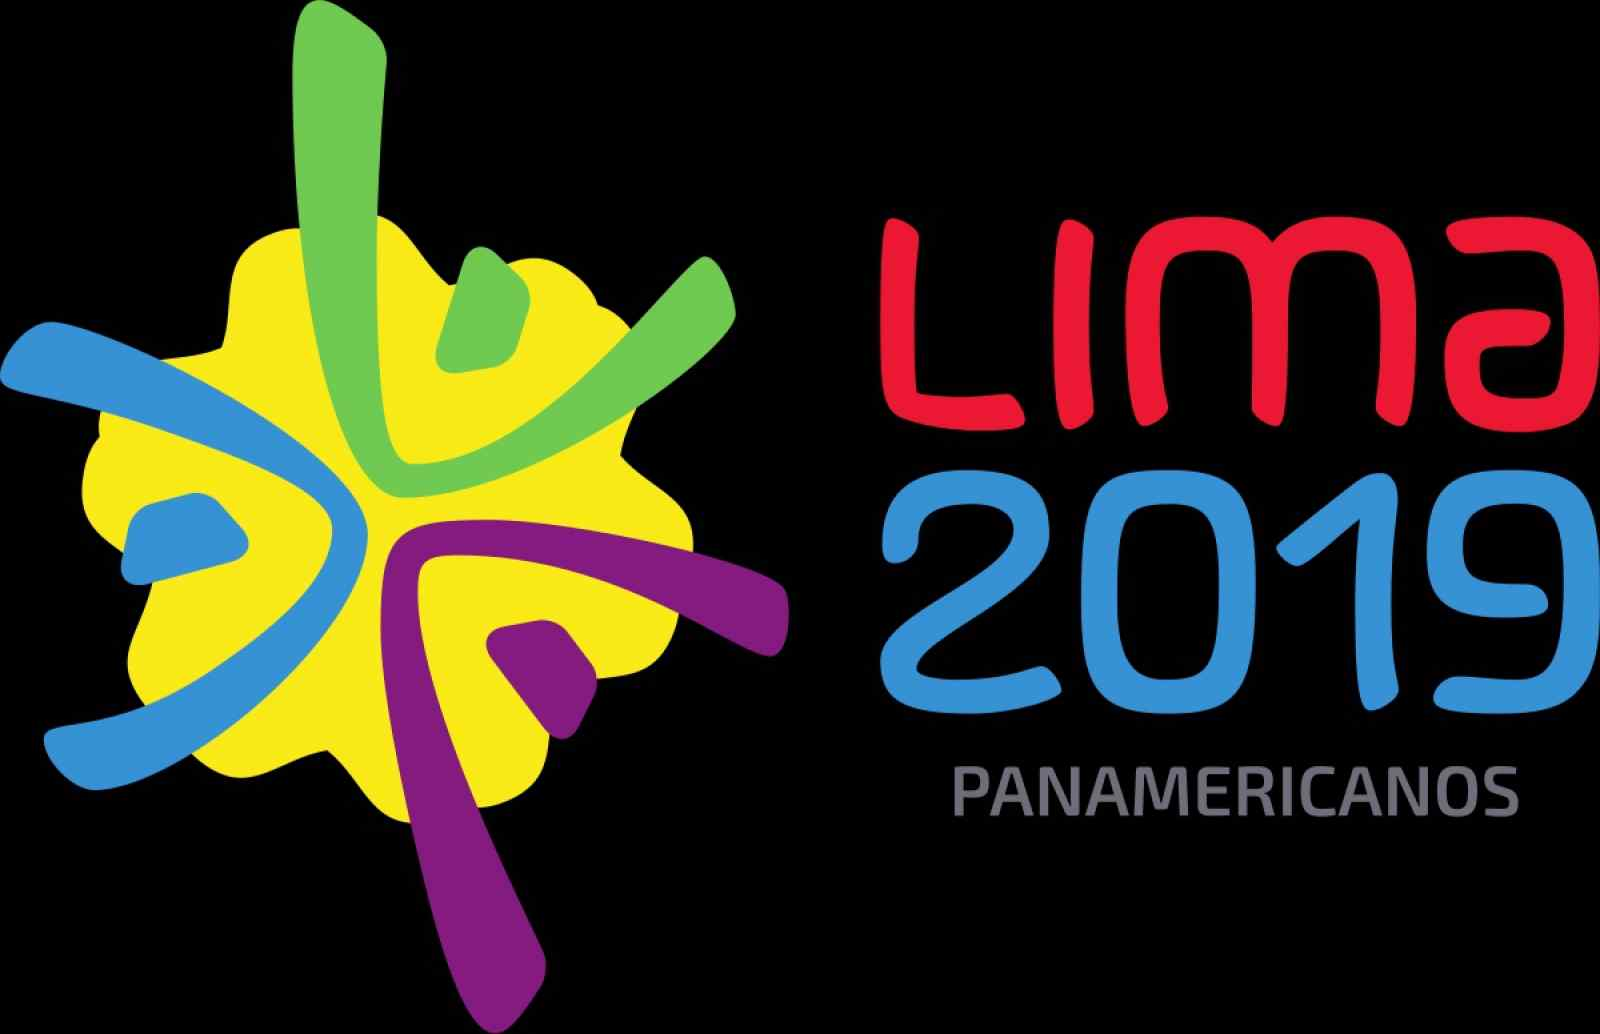 Belize at the 2019 Pan American Games